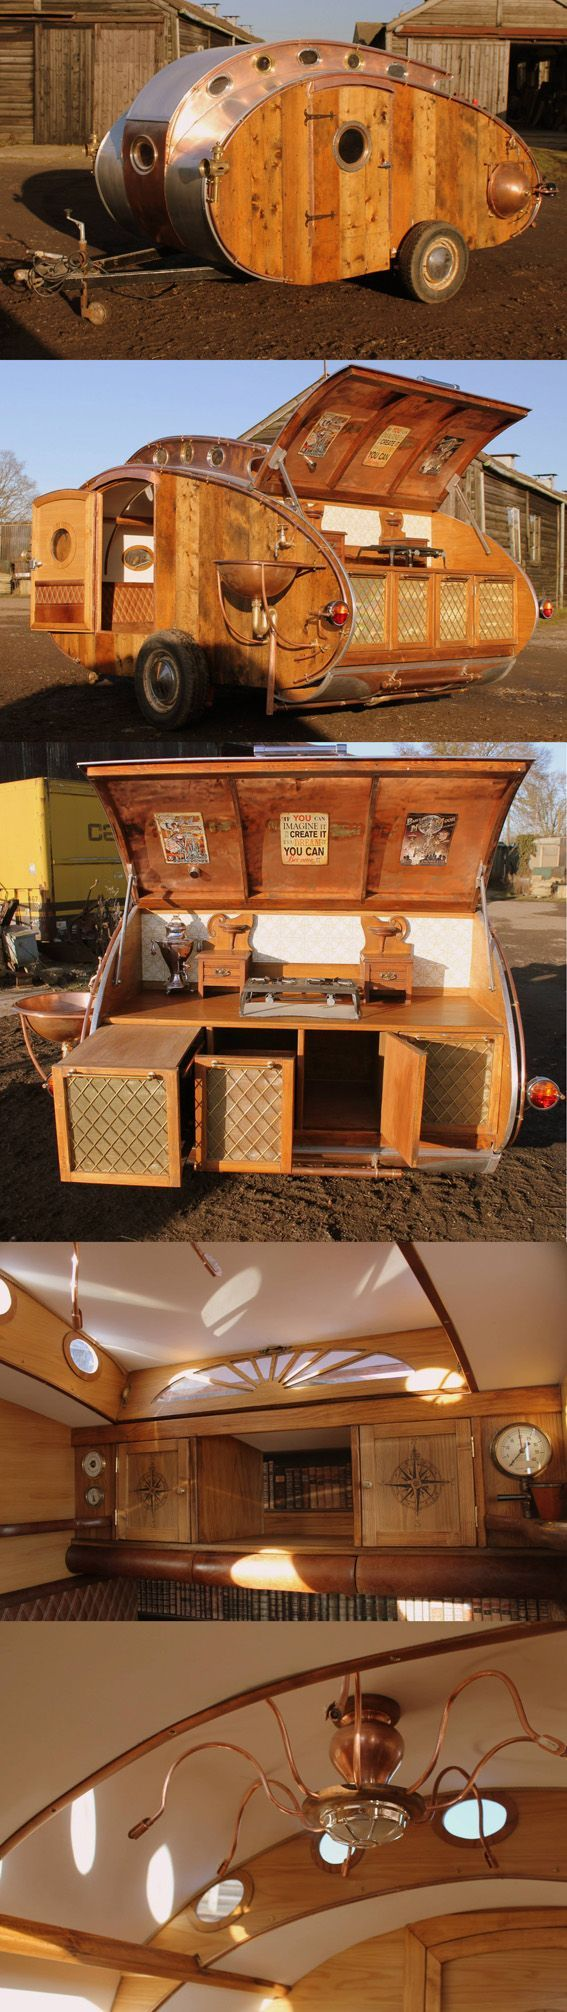 Posted in retro vintage tagged classic cars teardrop caravan vintage - Steampunk Teardrop Trailer Created By Dave Rosie Moult Take A Look At The Buster Crabbe Rocket Style And The Copious Use Of Copper Then Take A Look At